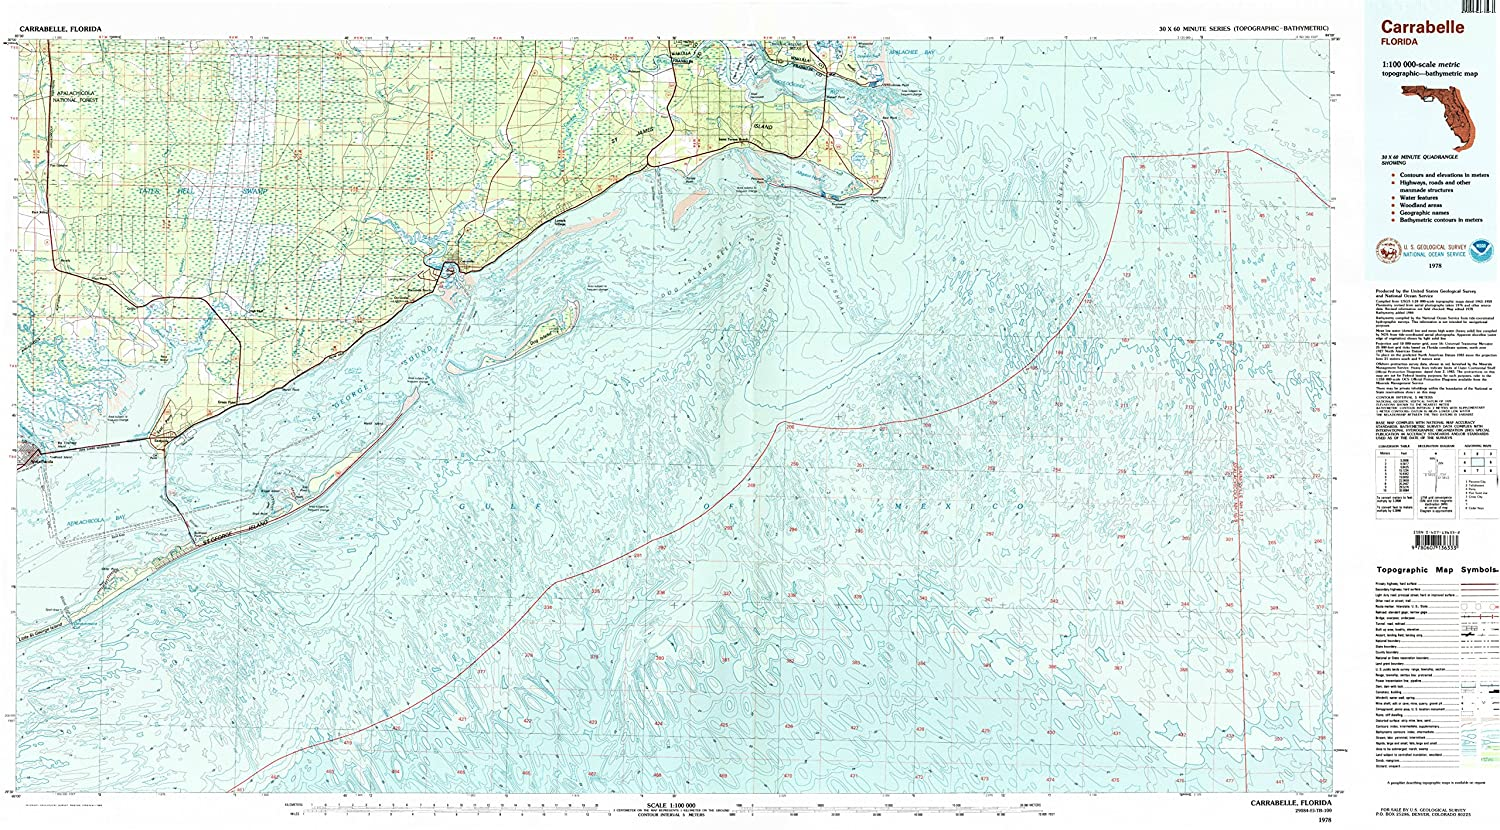 Topographical Map Of Florida.Amazon Com Yellowmaps Carrabelle Fl Topo Map 1 100000 Scale 30 X